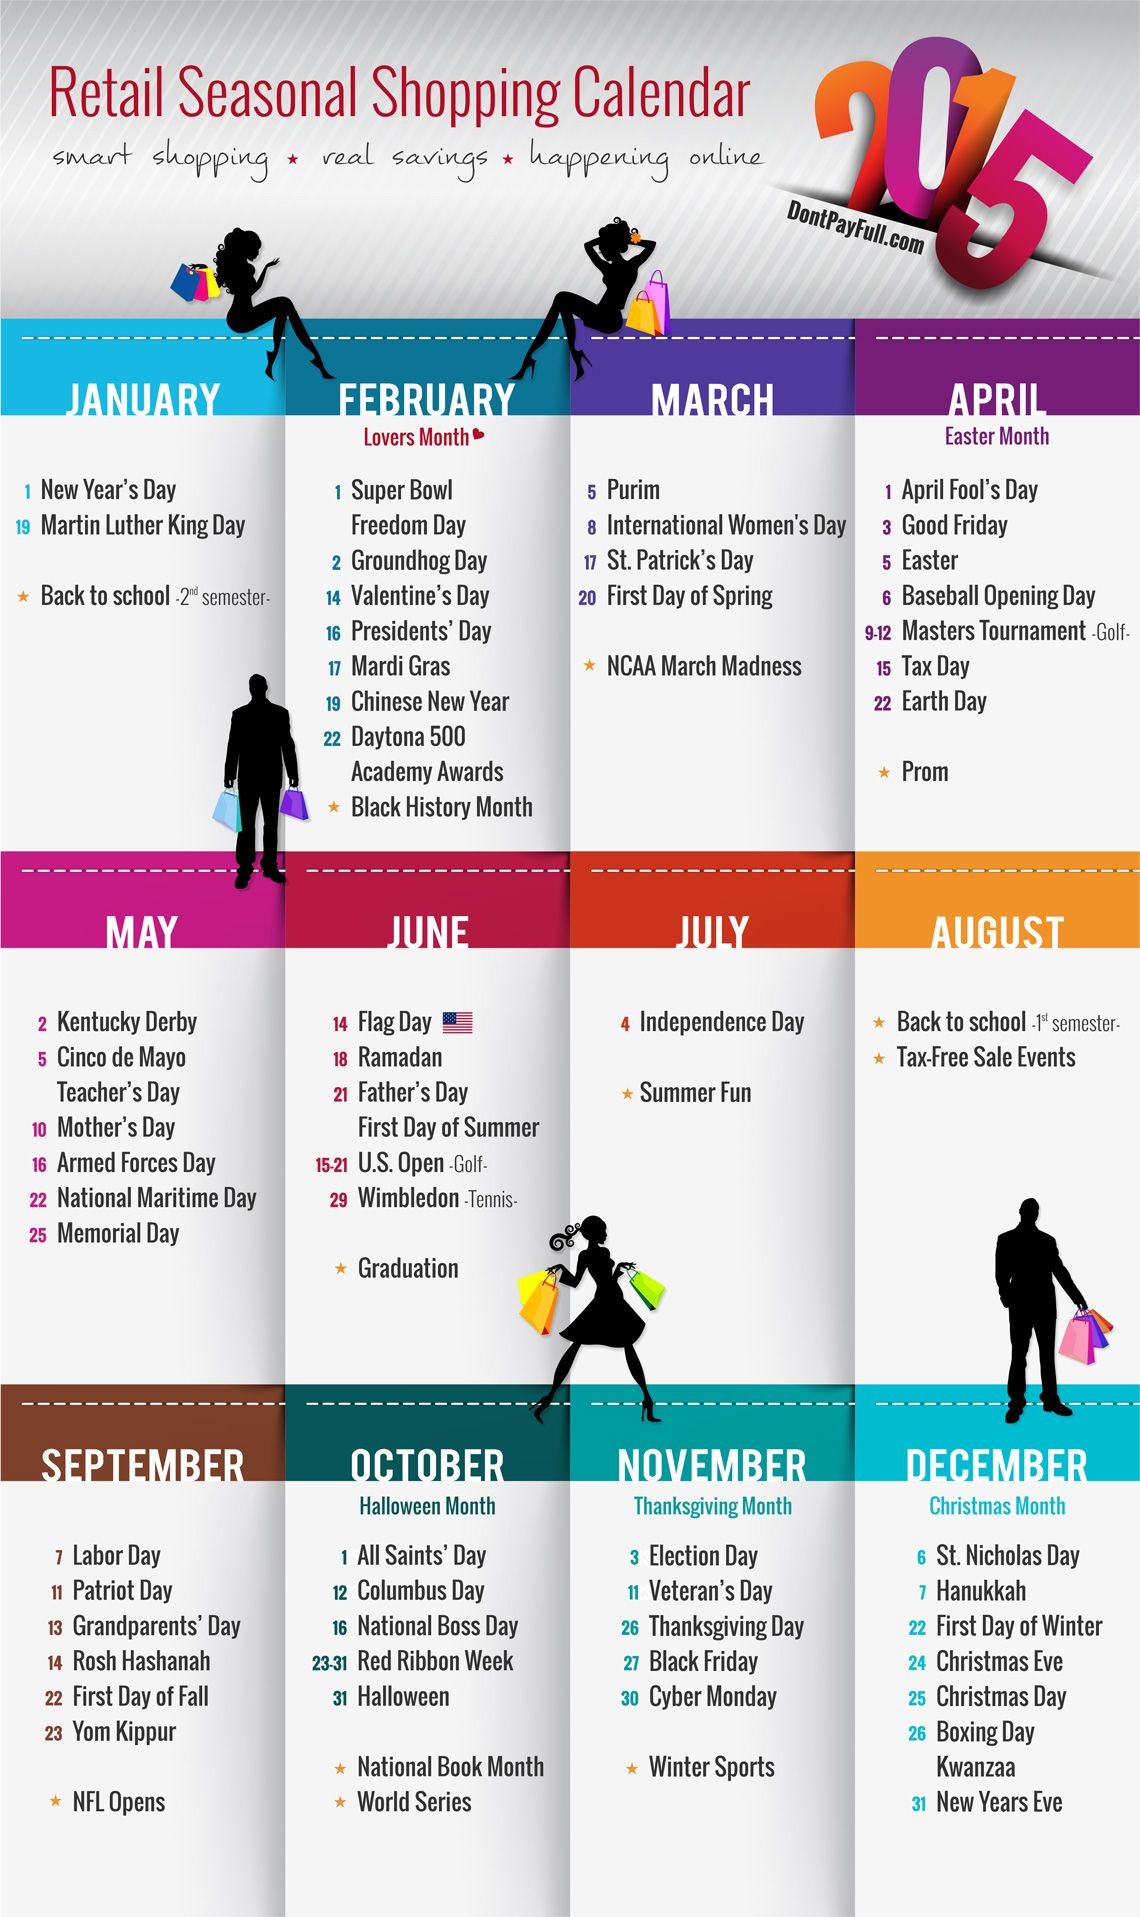 Retail Seasonal Shopping Calendar  Retail And Personal Finance